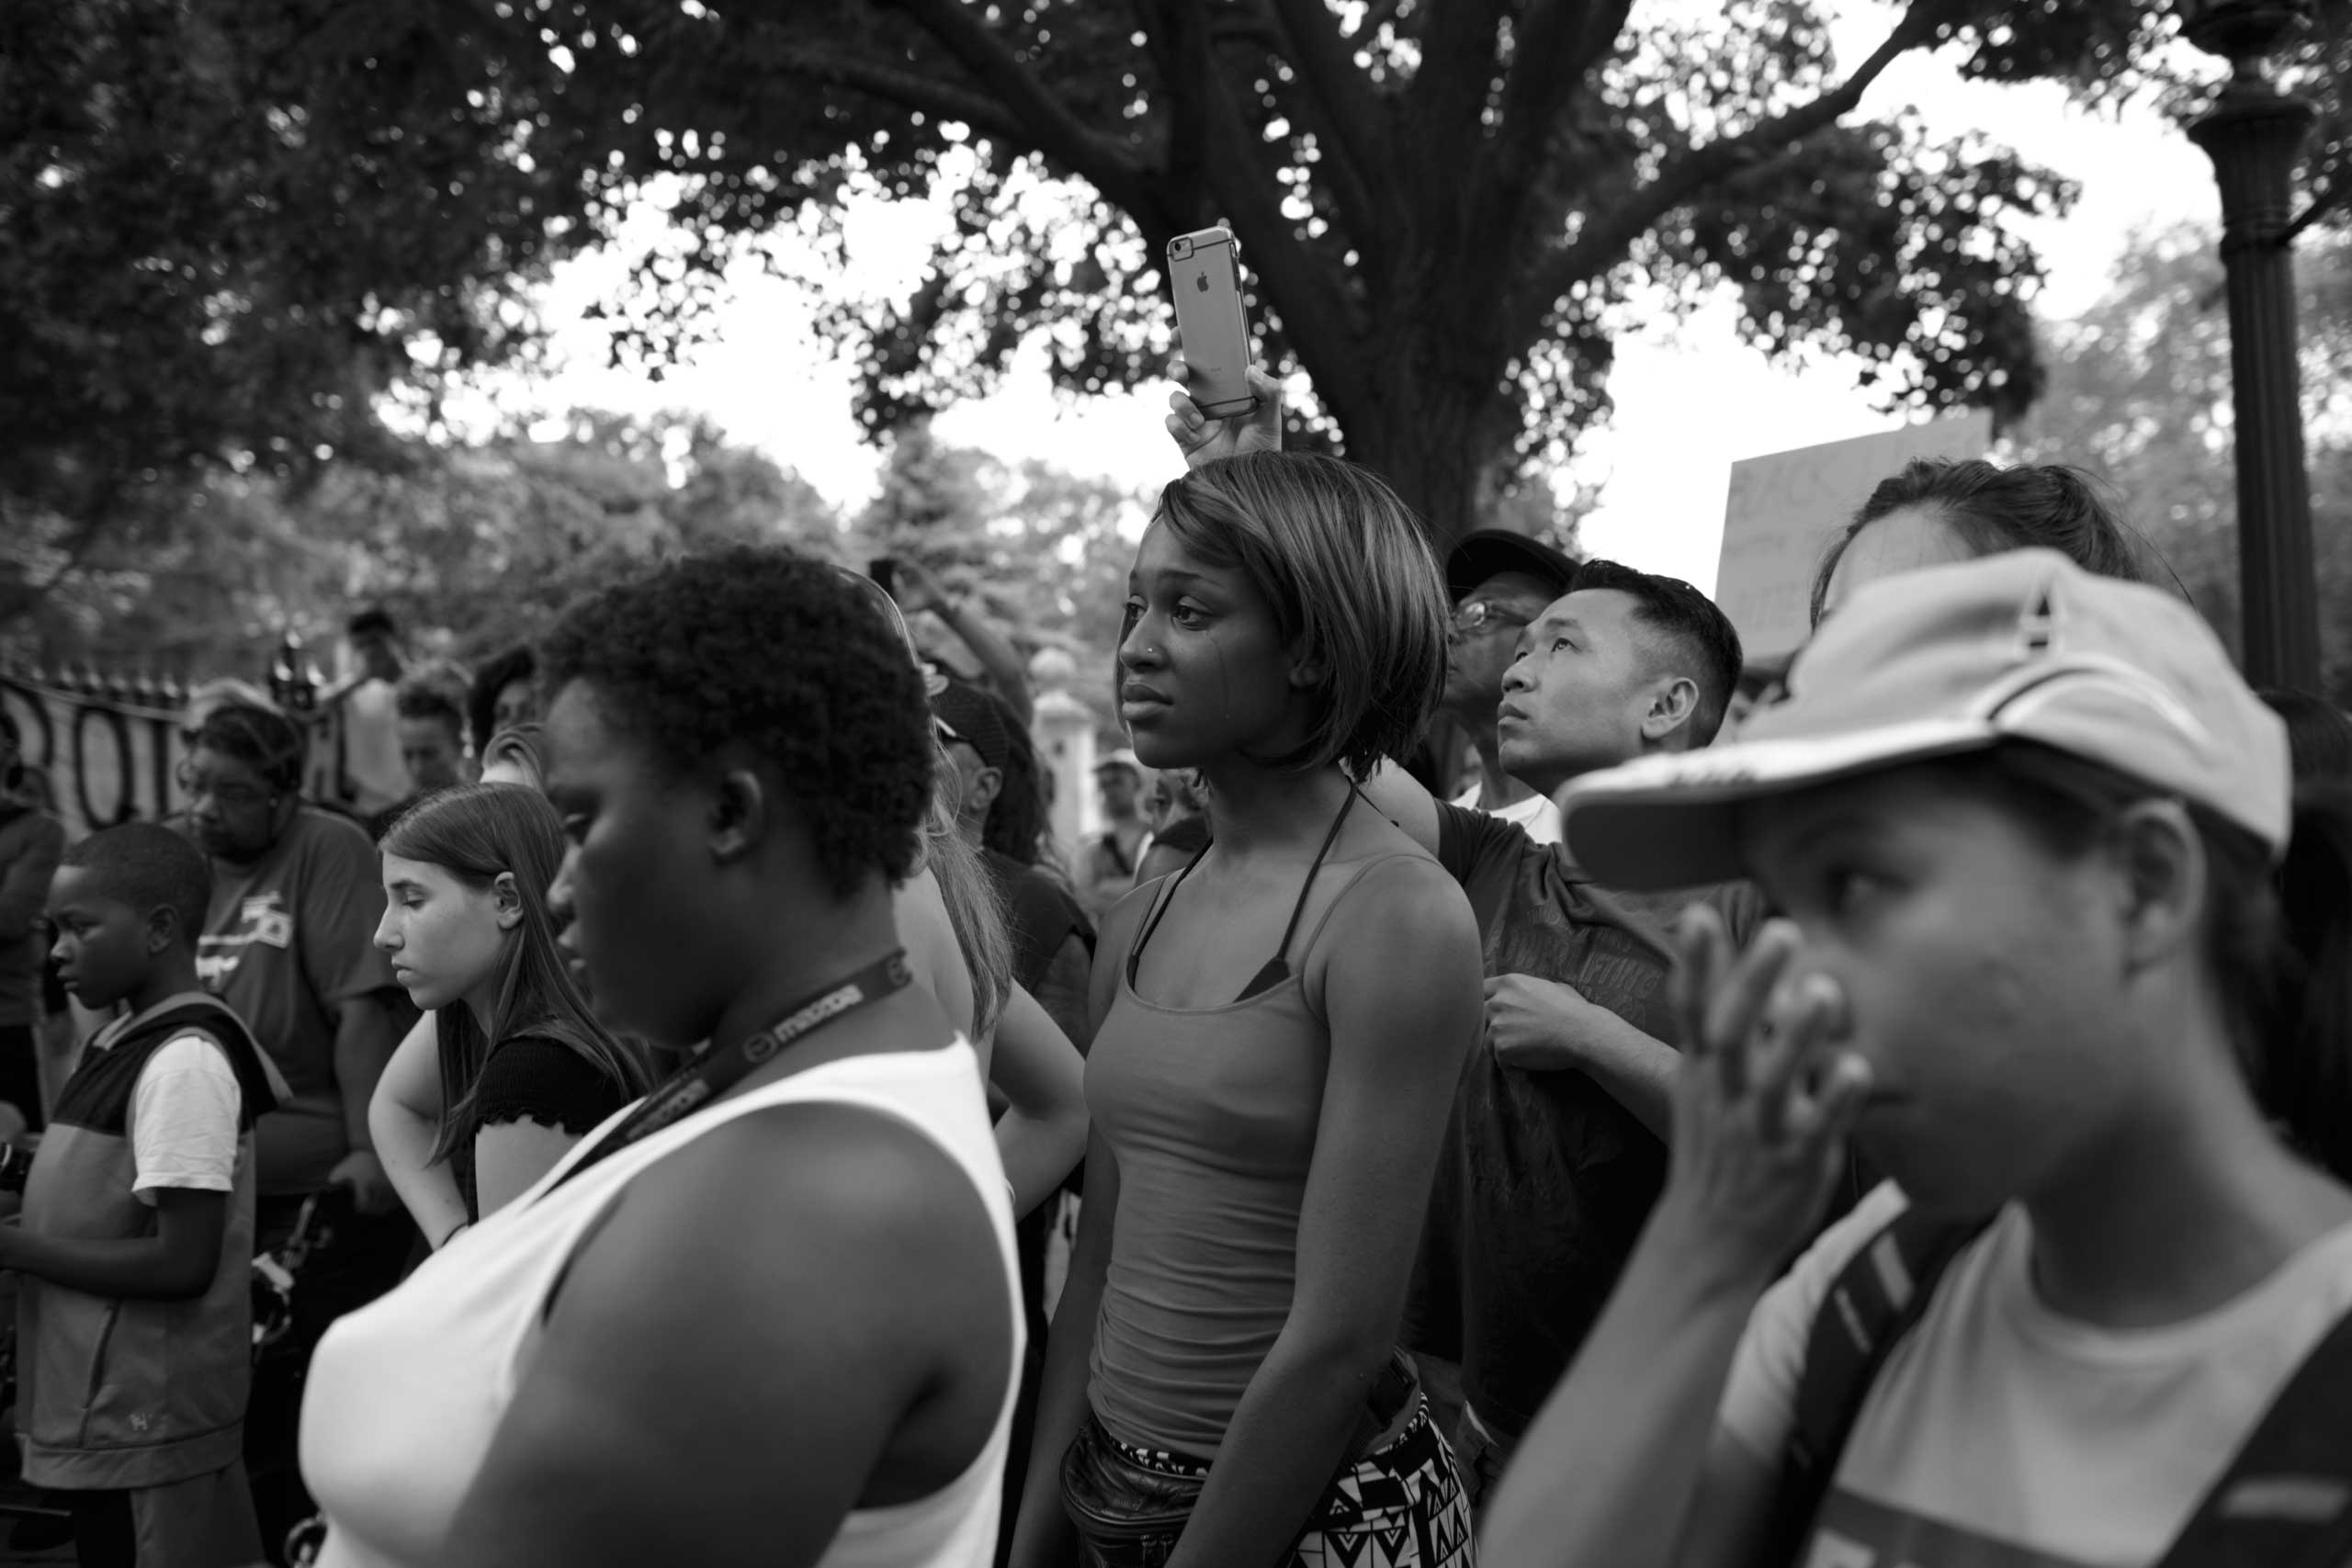 July 7, 2016 - St. Paul, Minnesota: Destiny Jackson (center) is attending a protest as a reaction to the fatal shooting of Philando Castile a day before. Black Lives Matters activists and people from the community gathered to grieve and demonstrate in front of the Governors mansion. Castile was shot by a police officer in Falcon Heights after his car was pulled over.